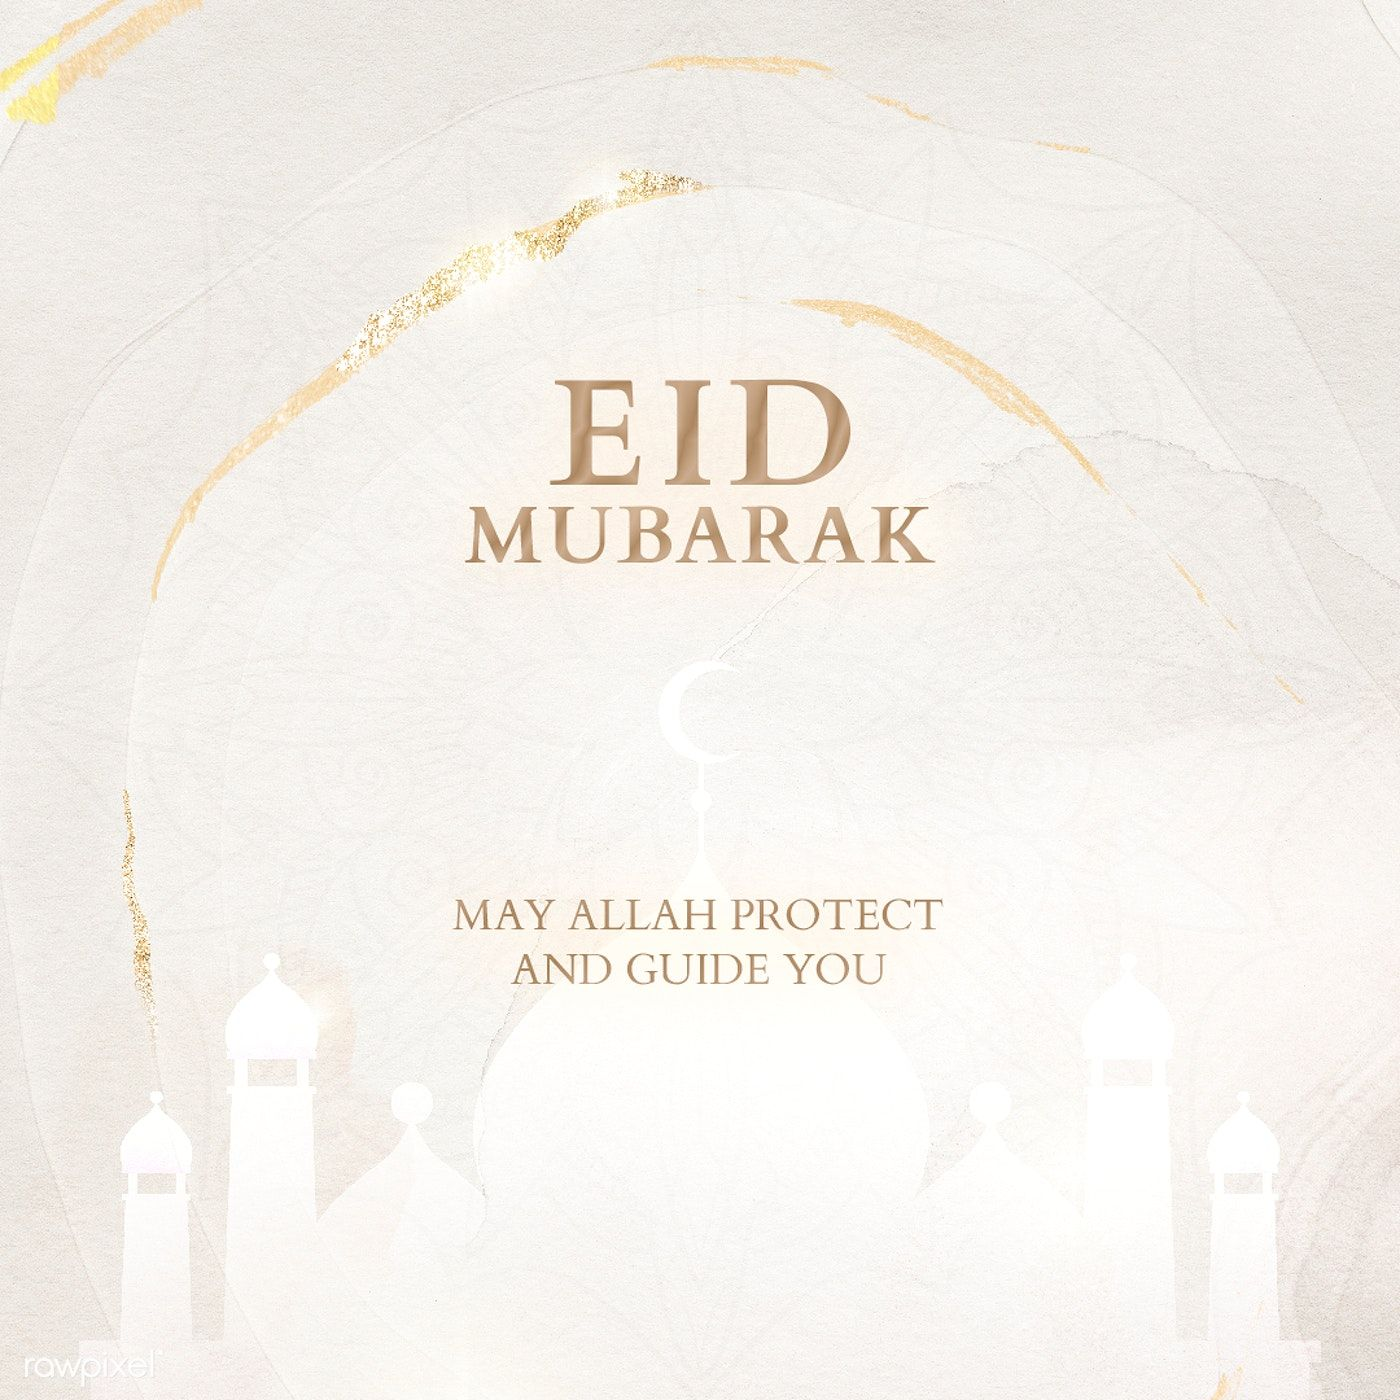 Festive Eid Mubarak Greeting Card Template Free Image By